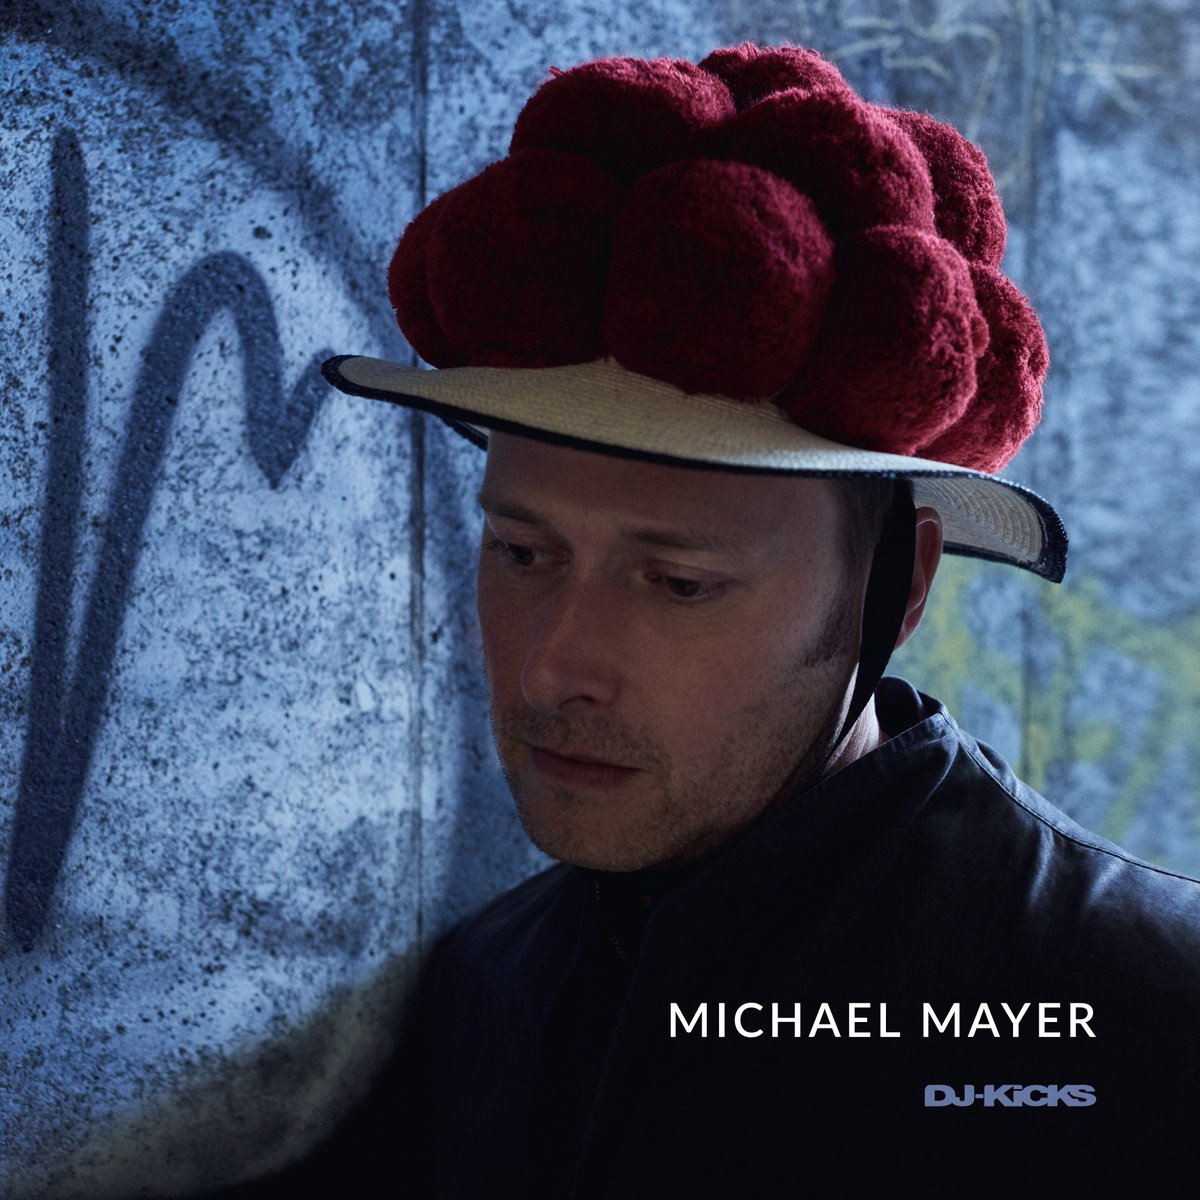 michael mayer downloadmichael mayer for you, michael mayer joe goddard for you, michael mayer mind games, michael mayer voyage interieur, michael mayer - &, michael mayer for you lyrics, michael mayer & joe goddard–for you, michael mayer and joe goddard's for you, michael mayer strongman, michael mayer dj, michael mayer - immer, michael mayer - the stickler, michael mayer discogs, michael mayer & joe goddard, michael mayer 2016, michael mayer download, michael mayer warszawa, michael mayer und da stehen, michael mayer frost